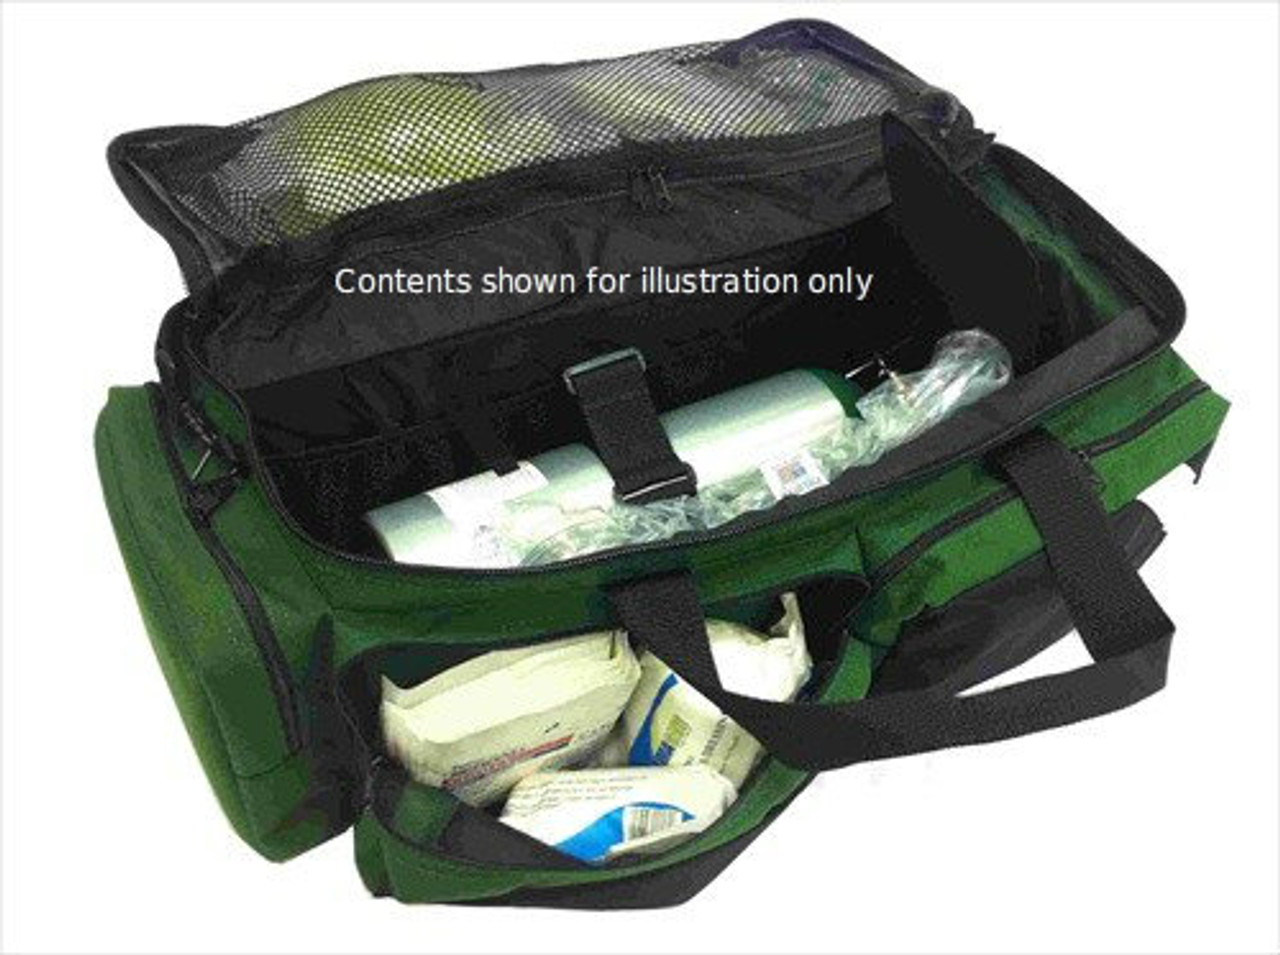 Dual Front Pocket Airpack Green - Open